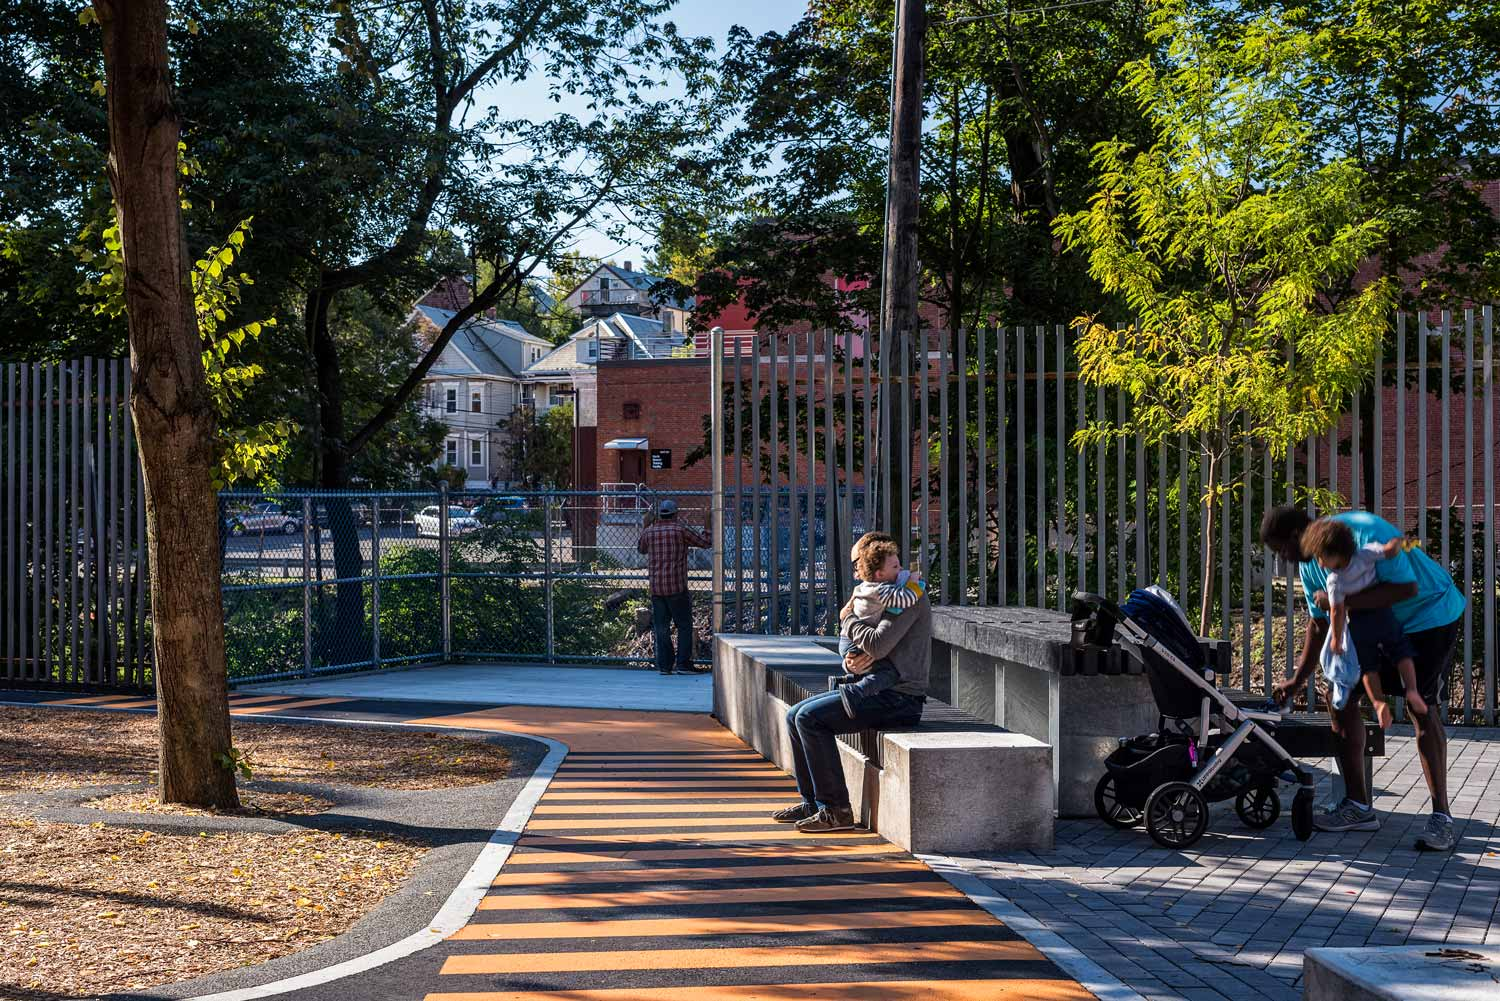 Hoyt-Sullivan-Park_train-overlook_community-table_landscape-architecture_Klopfer-Martin.jpg